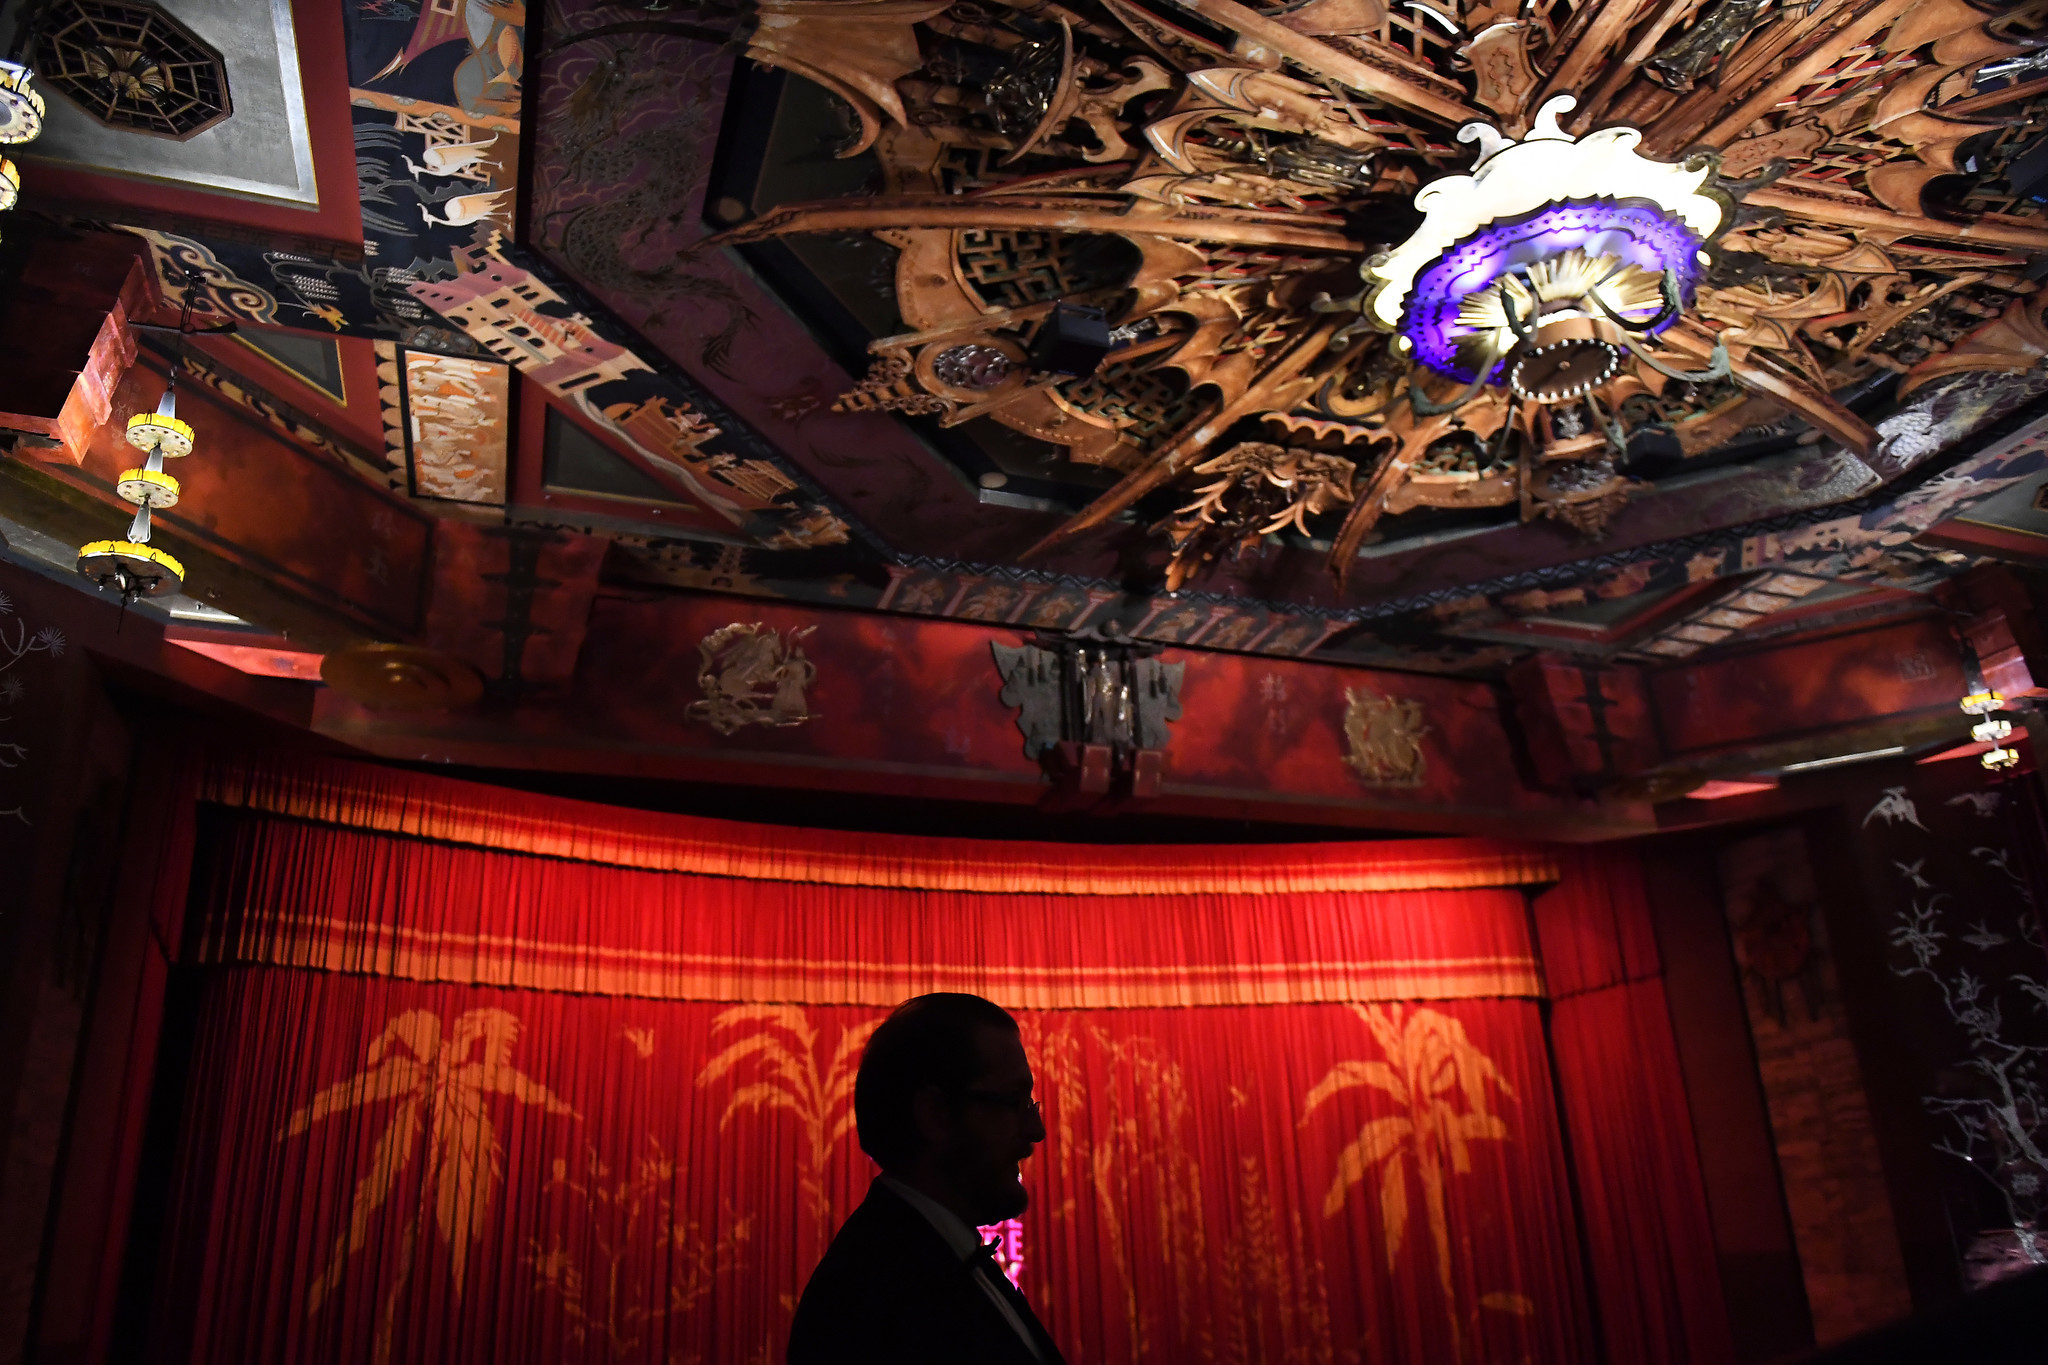 From Grauman's to TCL: 90 years of the Chinese Theatre ...